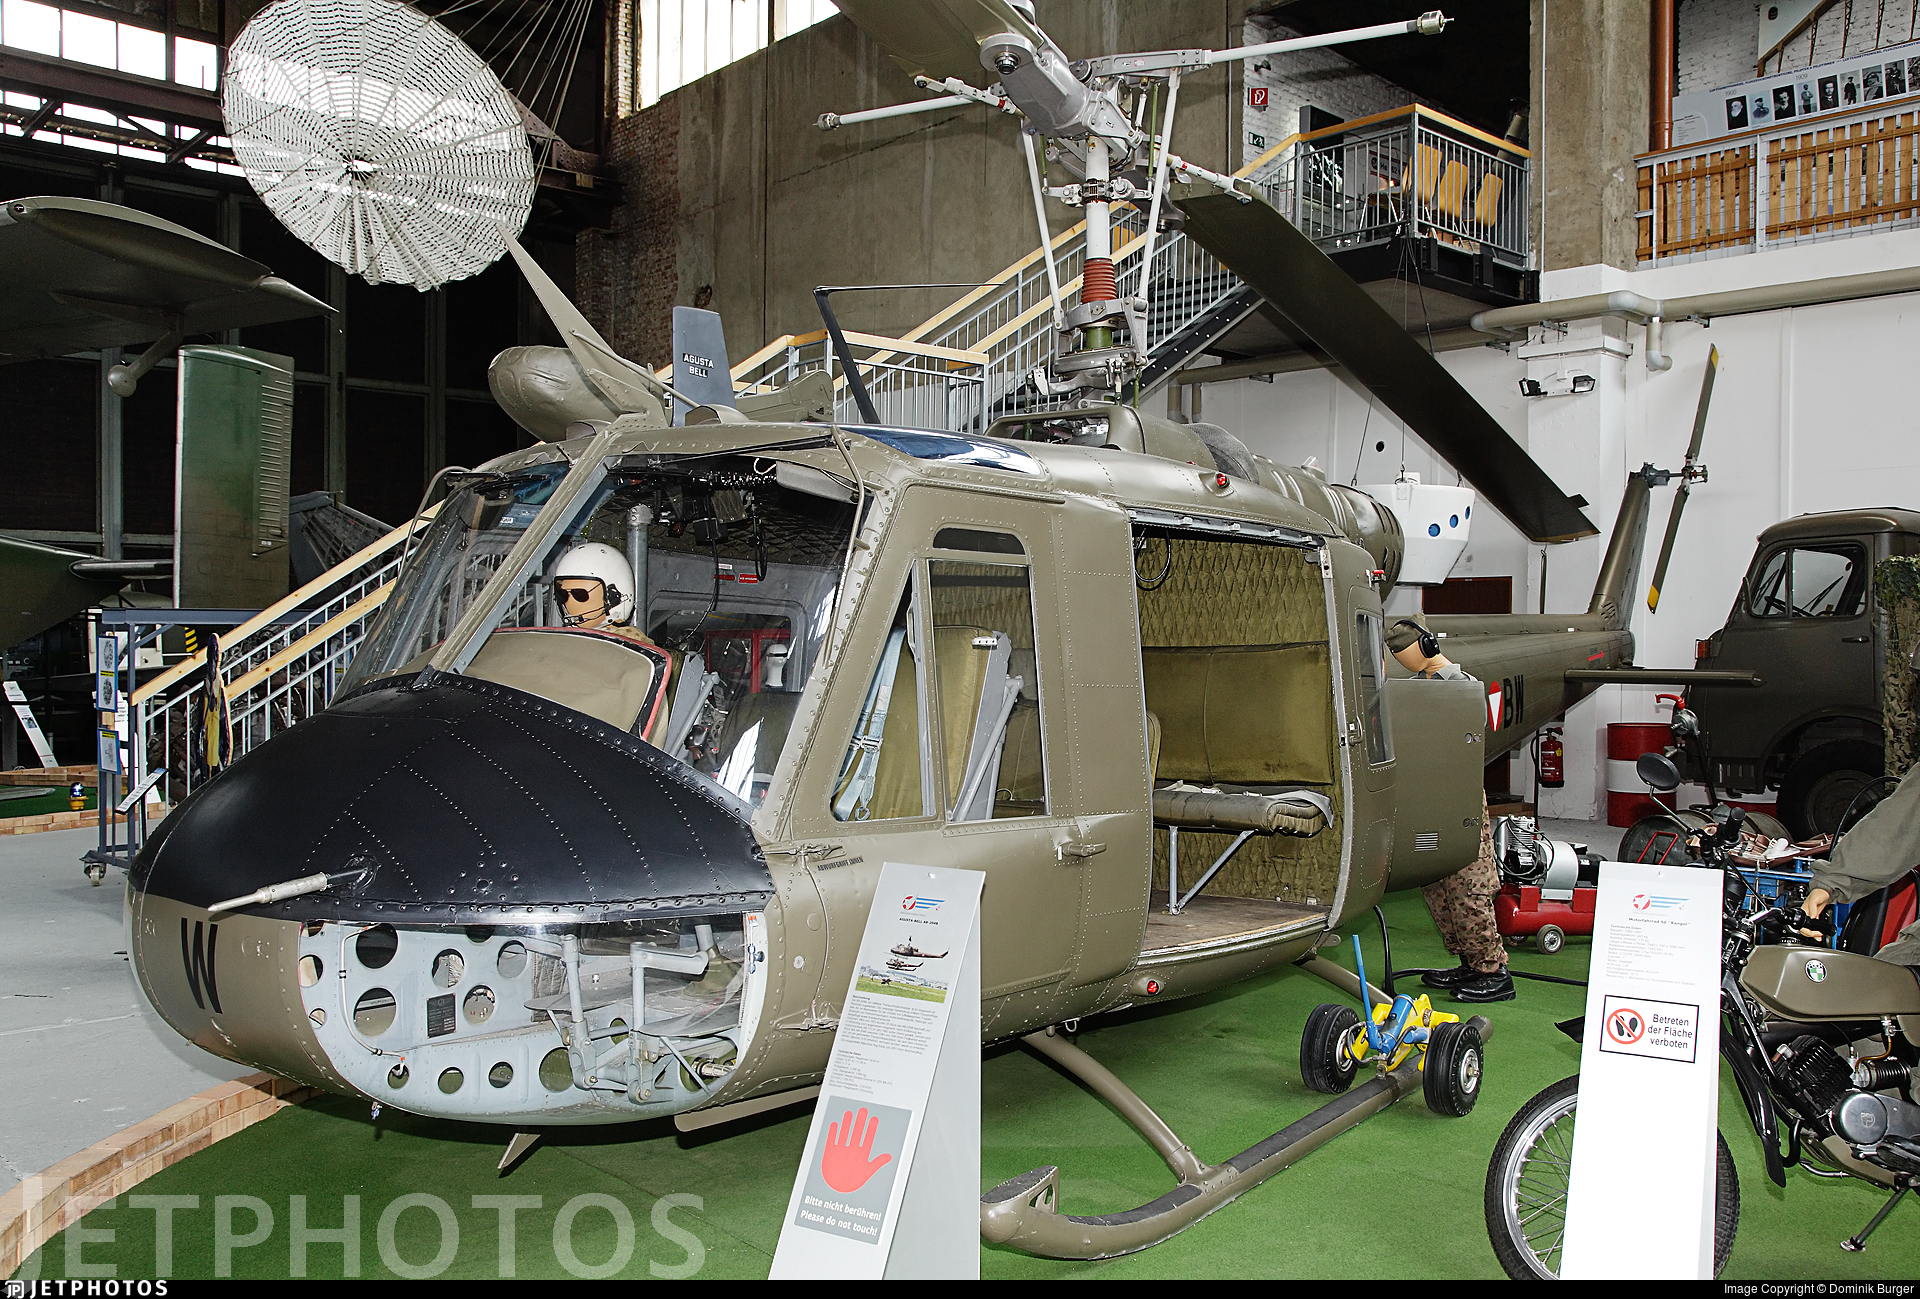 4D-BW - Agusta-Bell AB-204B - Austria - Air Force